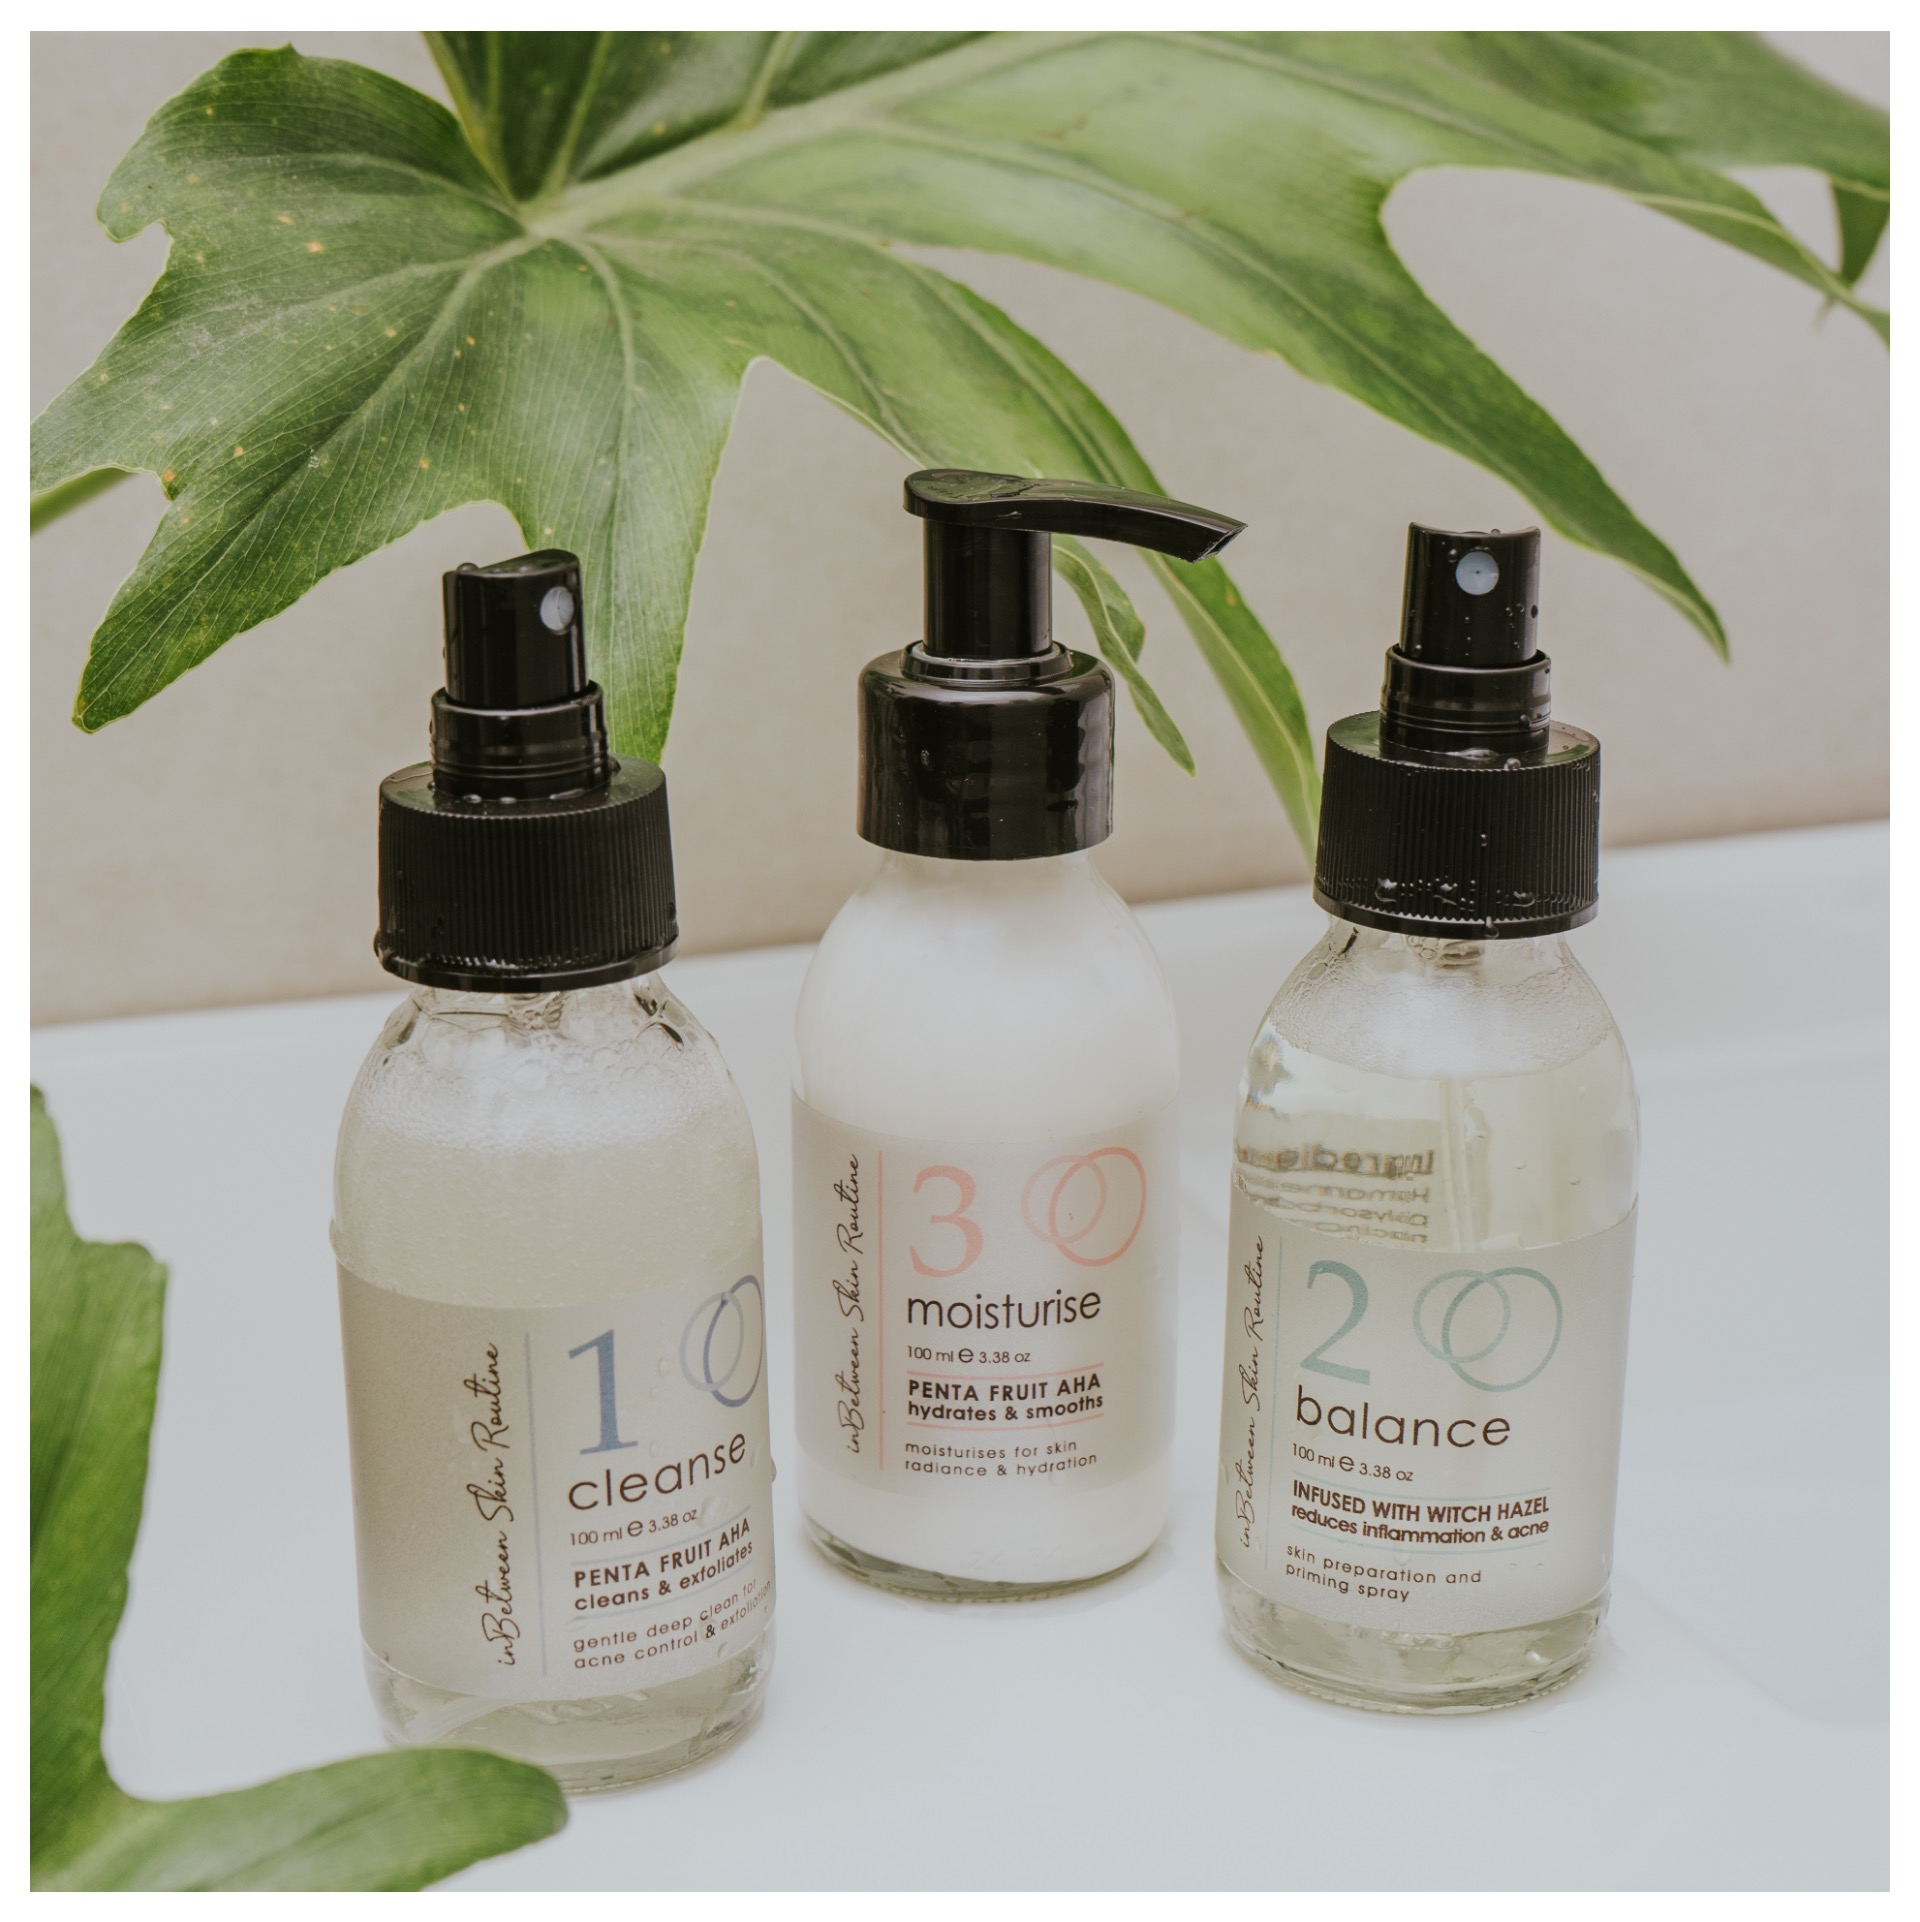 A bottle of cleanser, balancer and moisturizer by In-Between Products